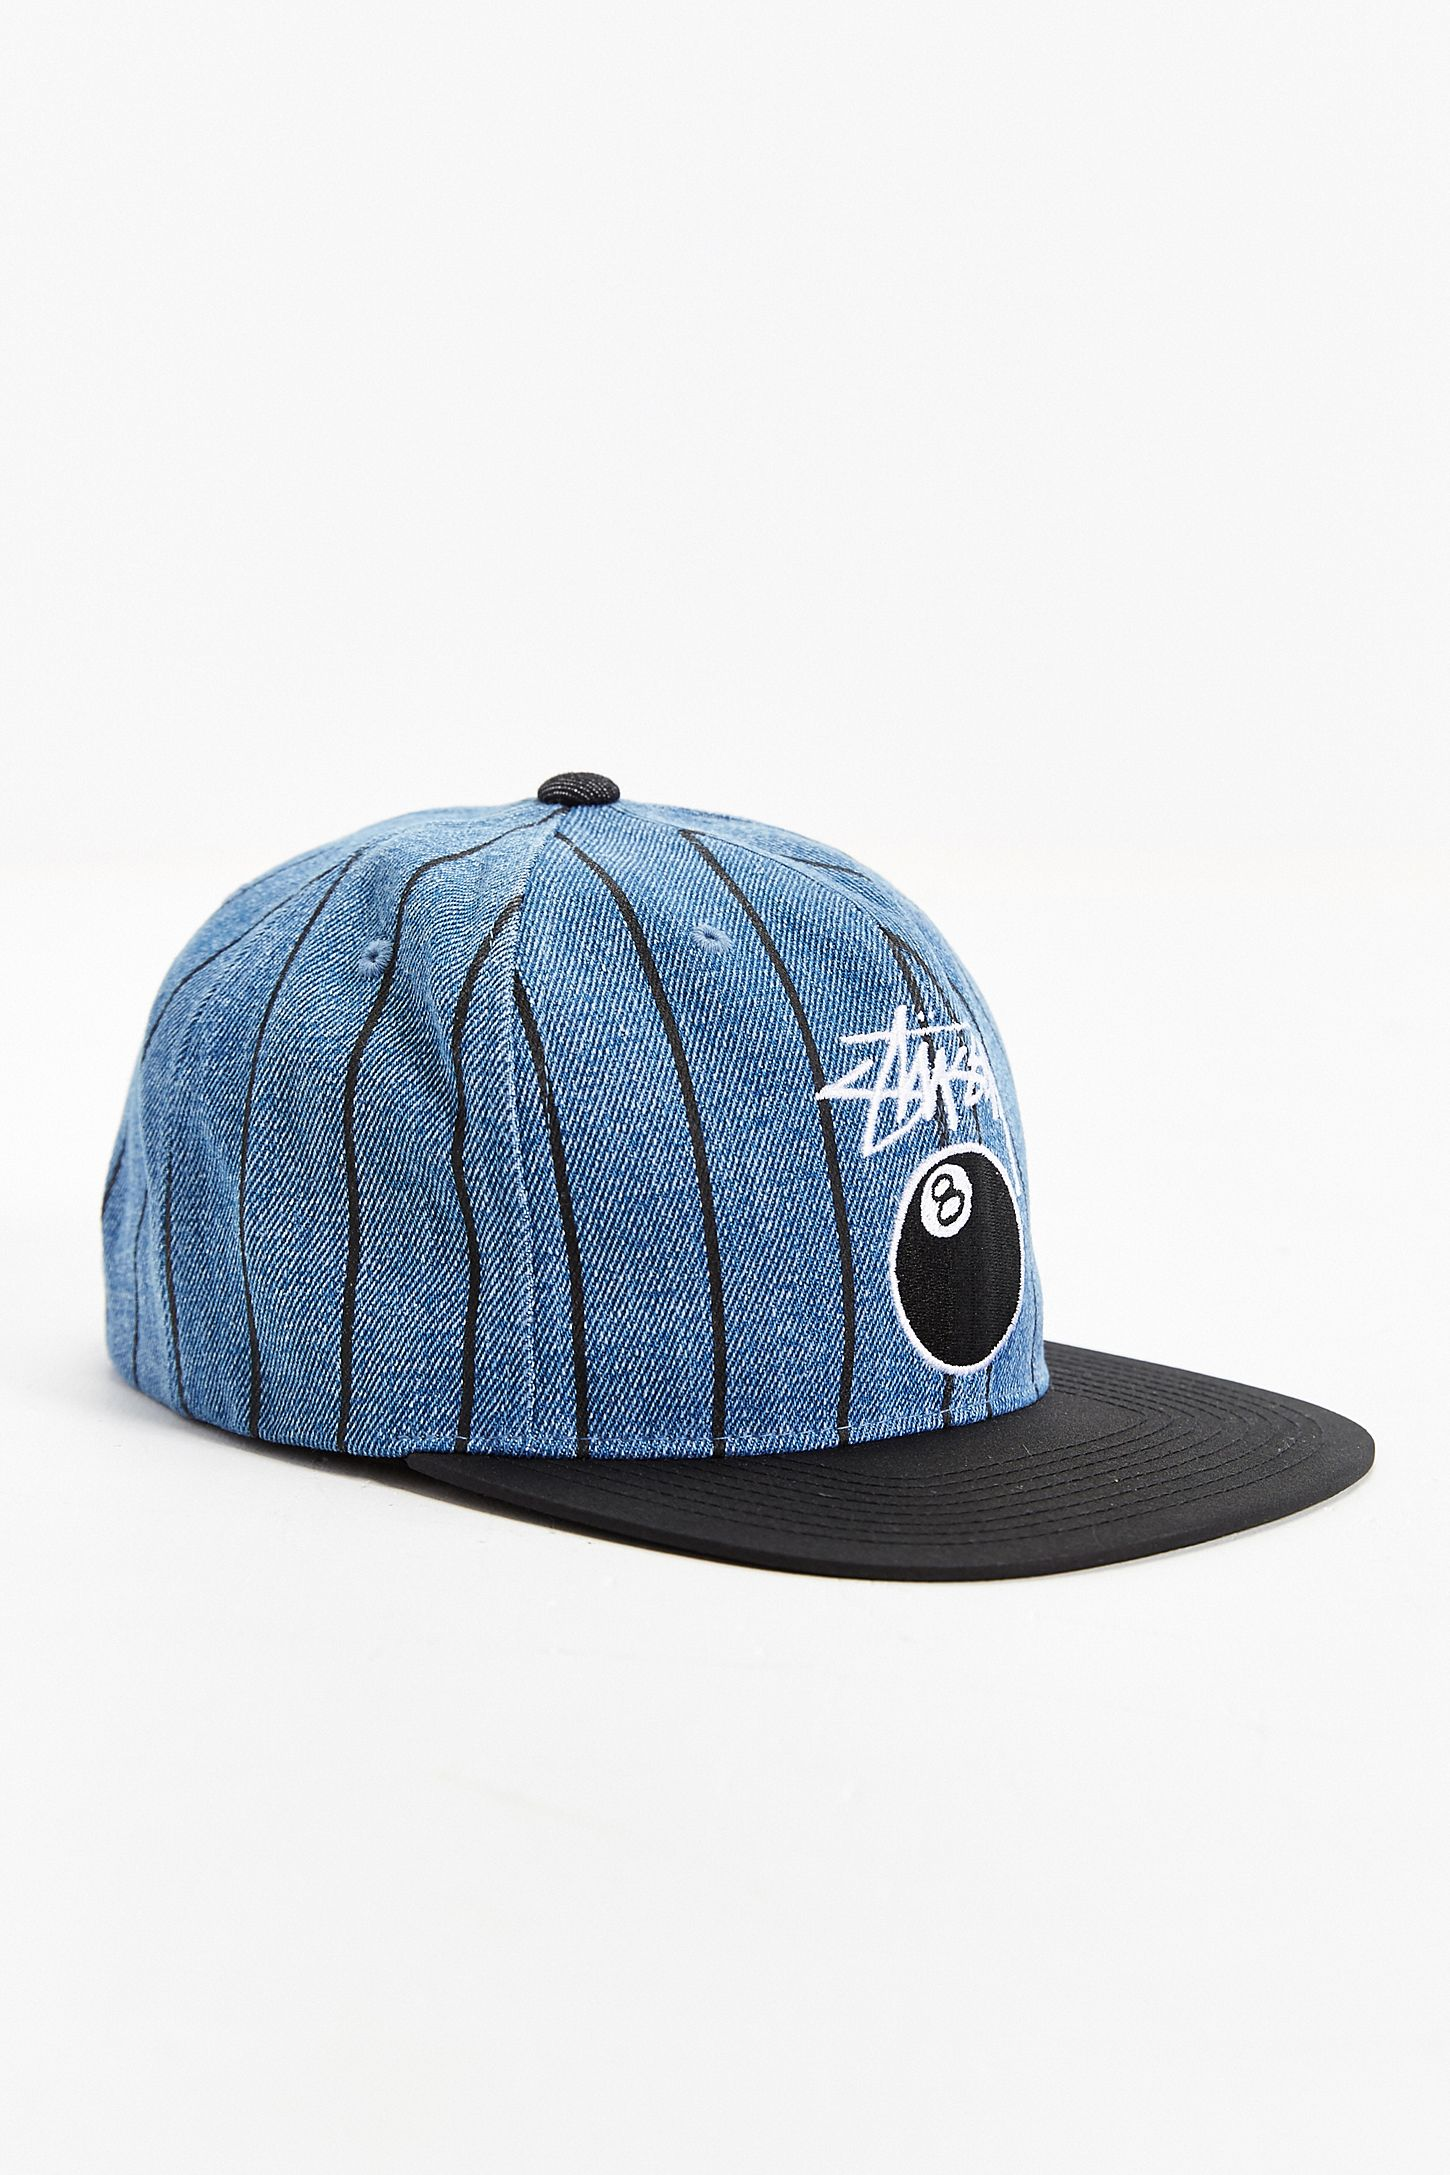 4a305b492d5664 Stussy 8-Ball Pinstripe Denim Snapback Hat | Urban Outfitters Canada